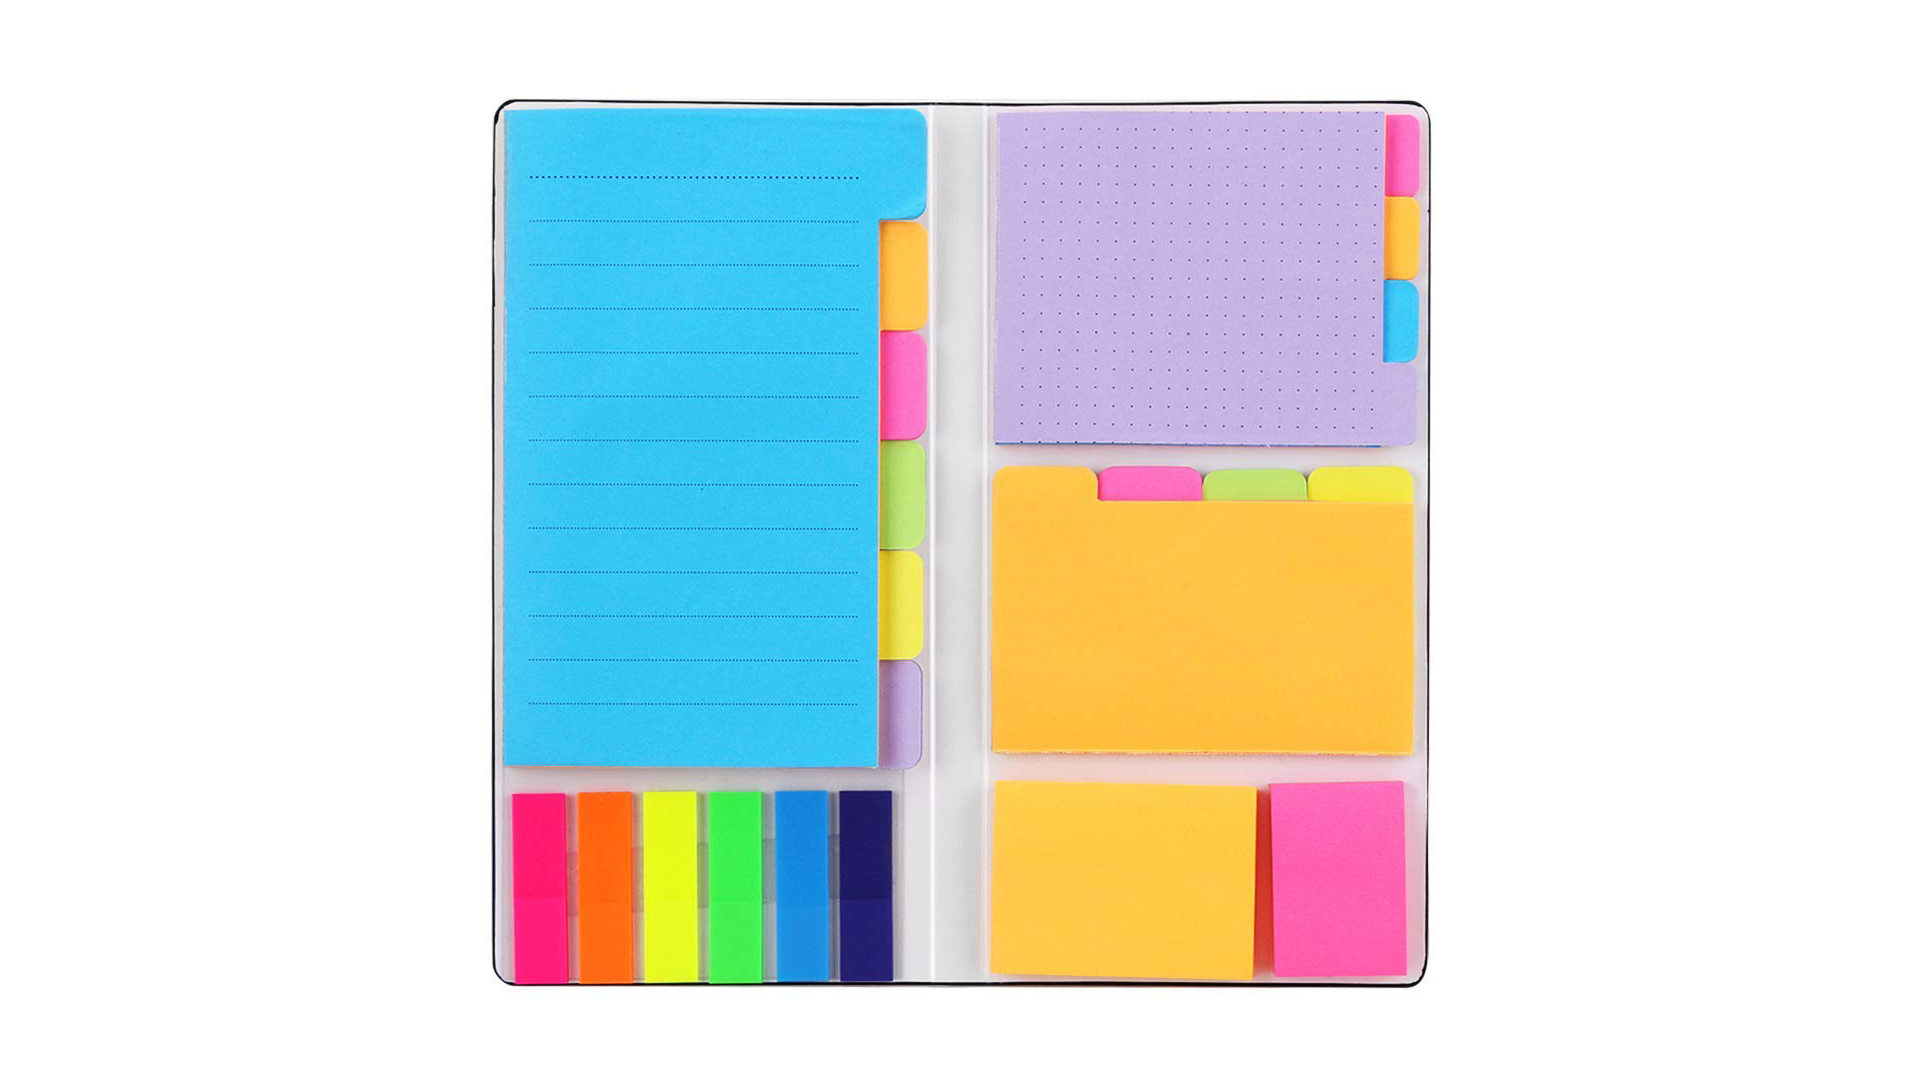 Sticky notes are a great way of organizing your school work